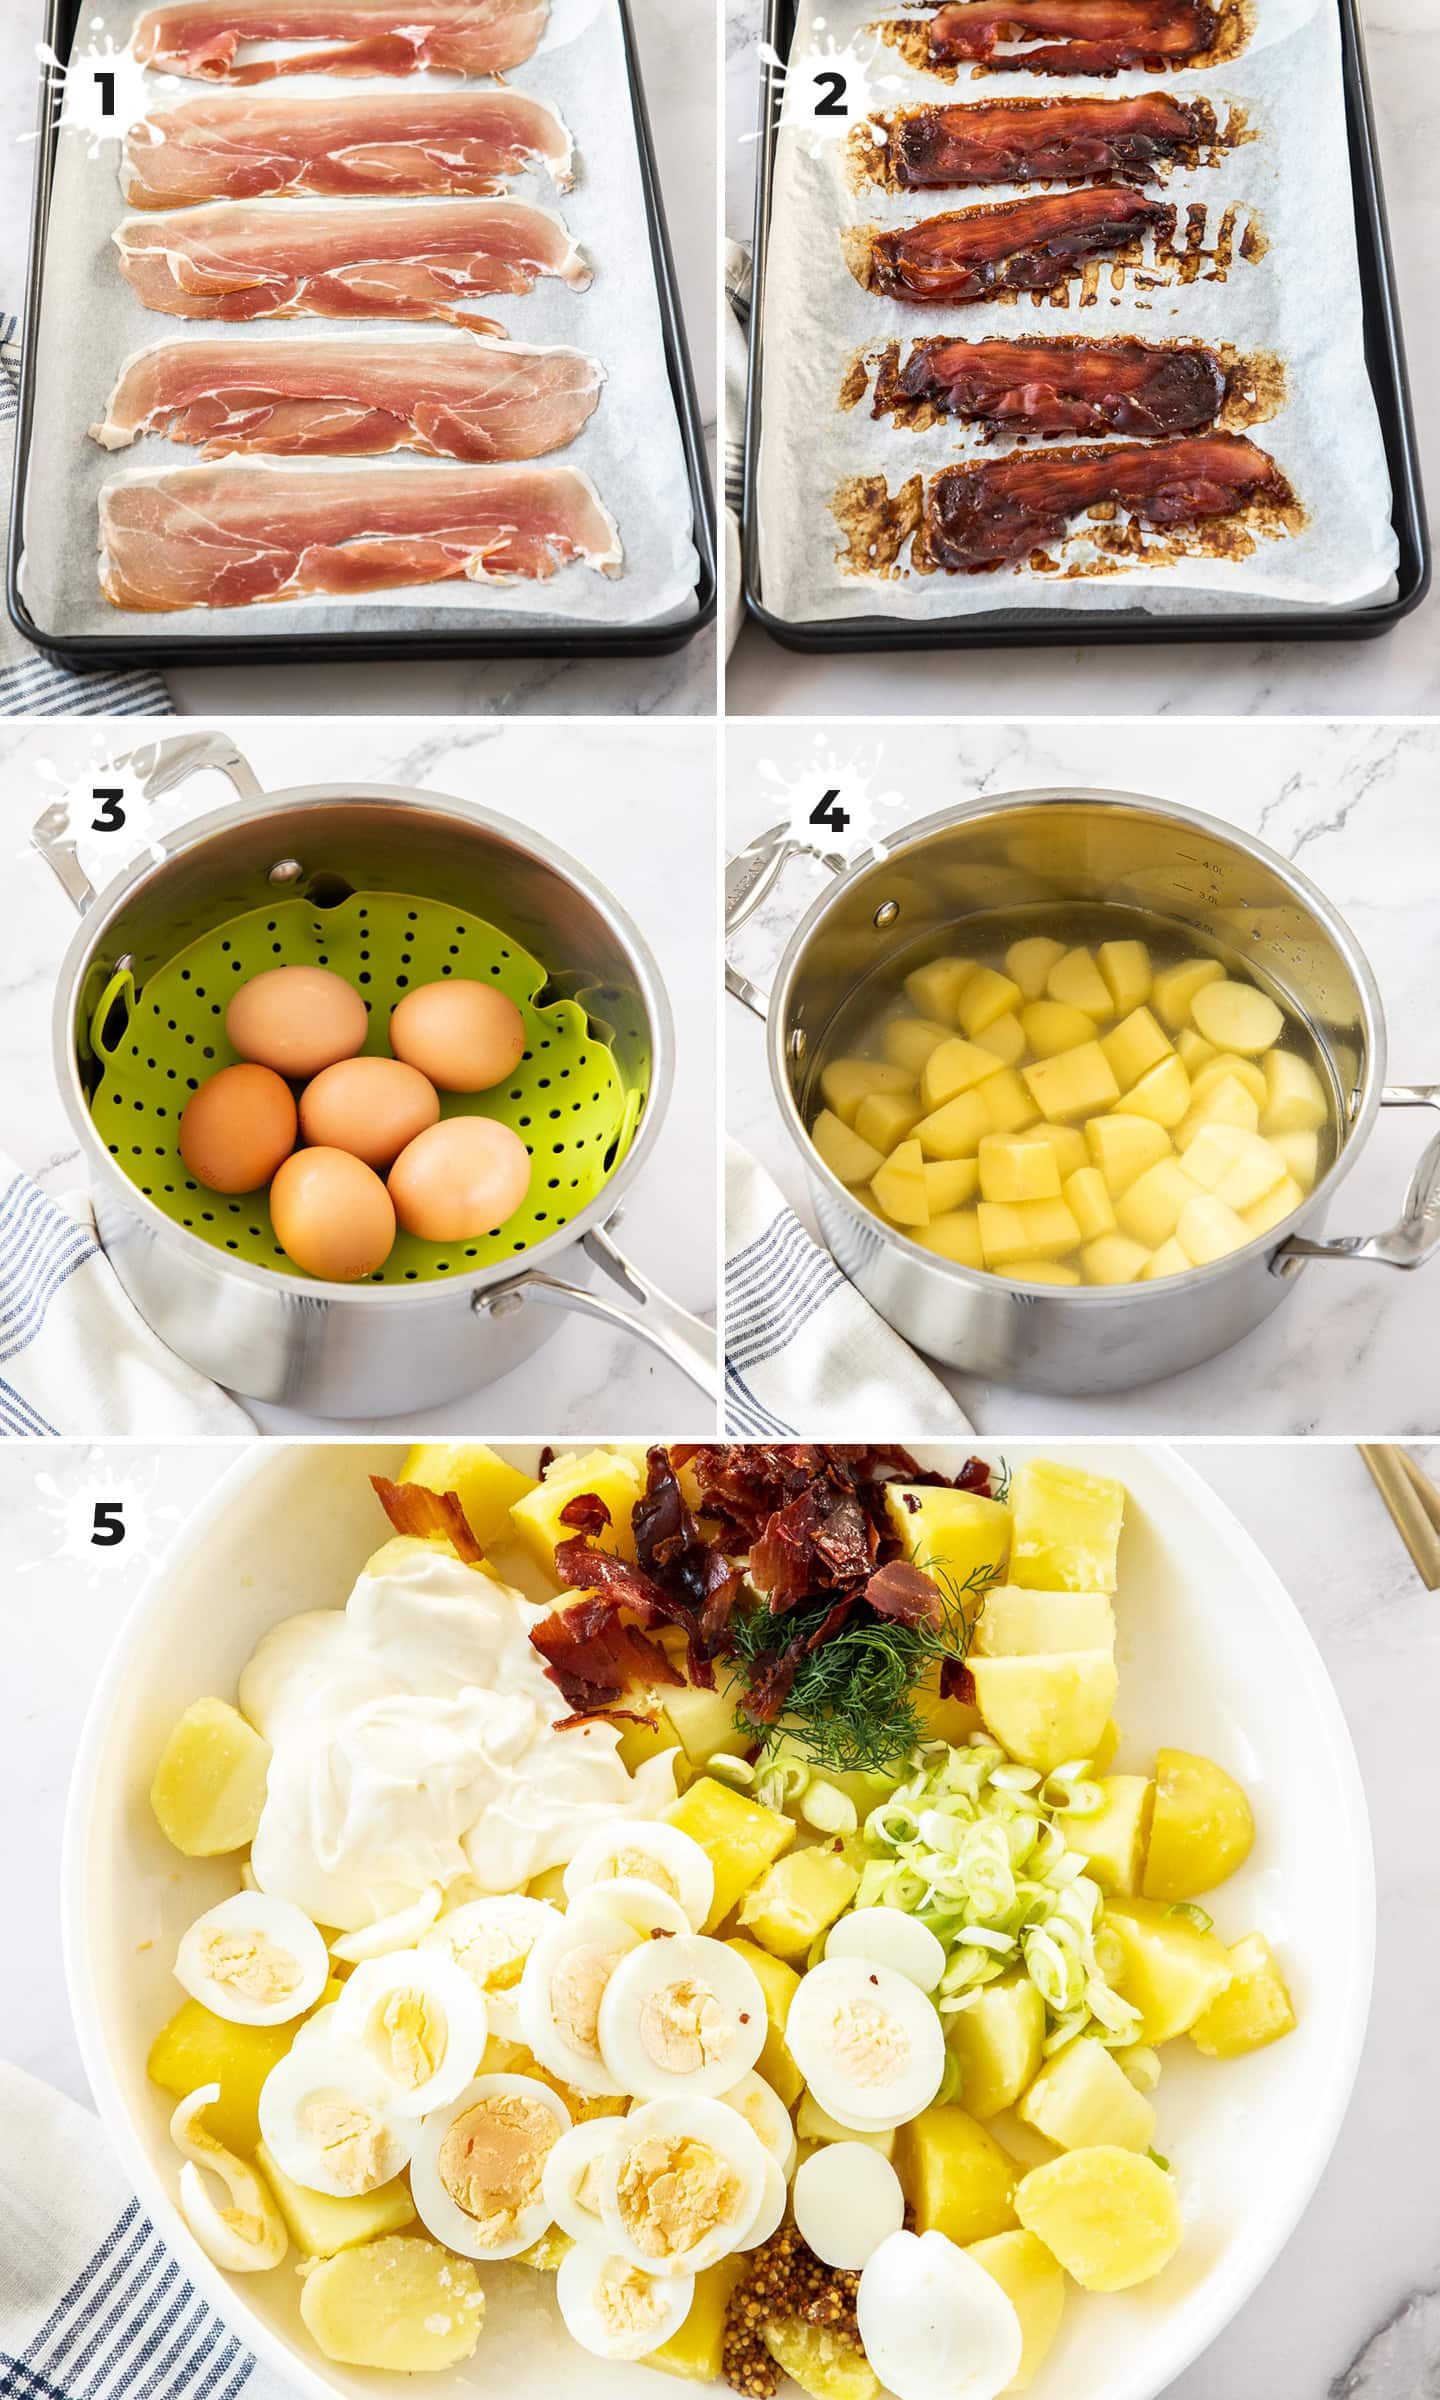 Steps showing how to make potato salad.